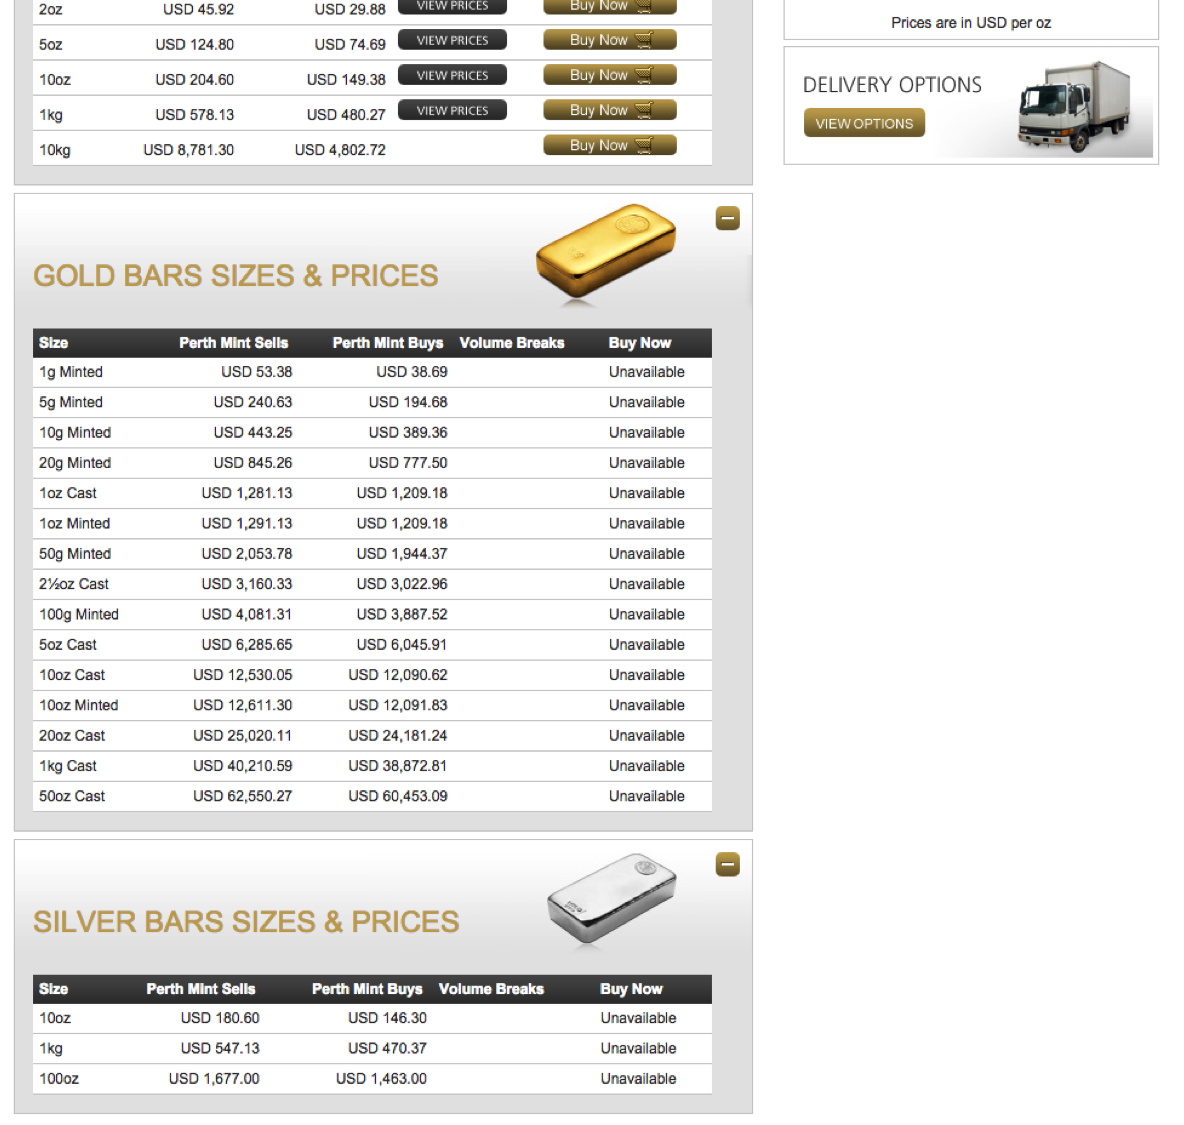 Wall Street Still Doesnt Understand >> Got Gold? The Perth Mint Doesn't. They're Sold Out. – Len Penzo dot Com